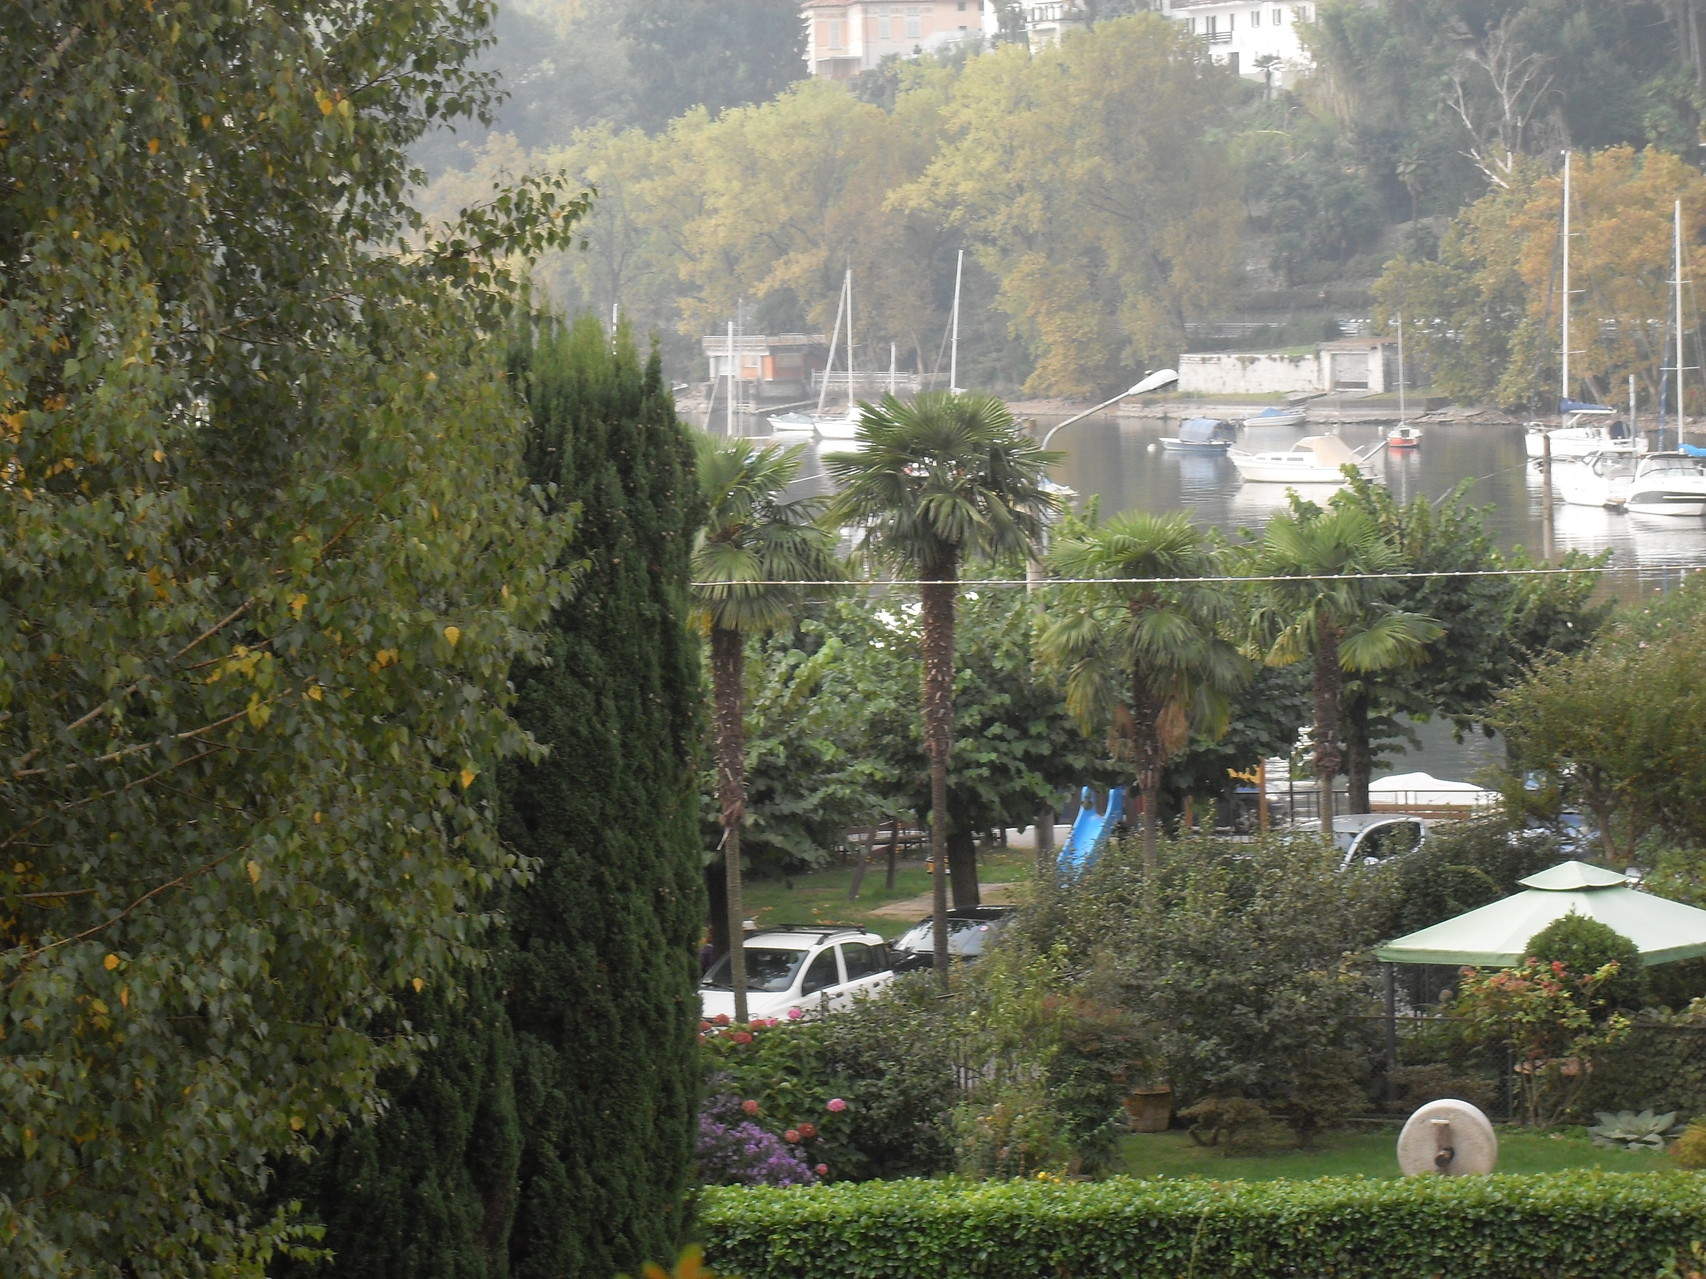 we are 50 meters from the camping and 70 meters from the marina.